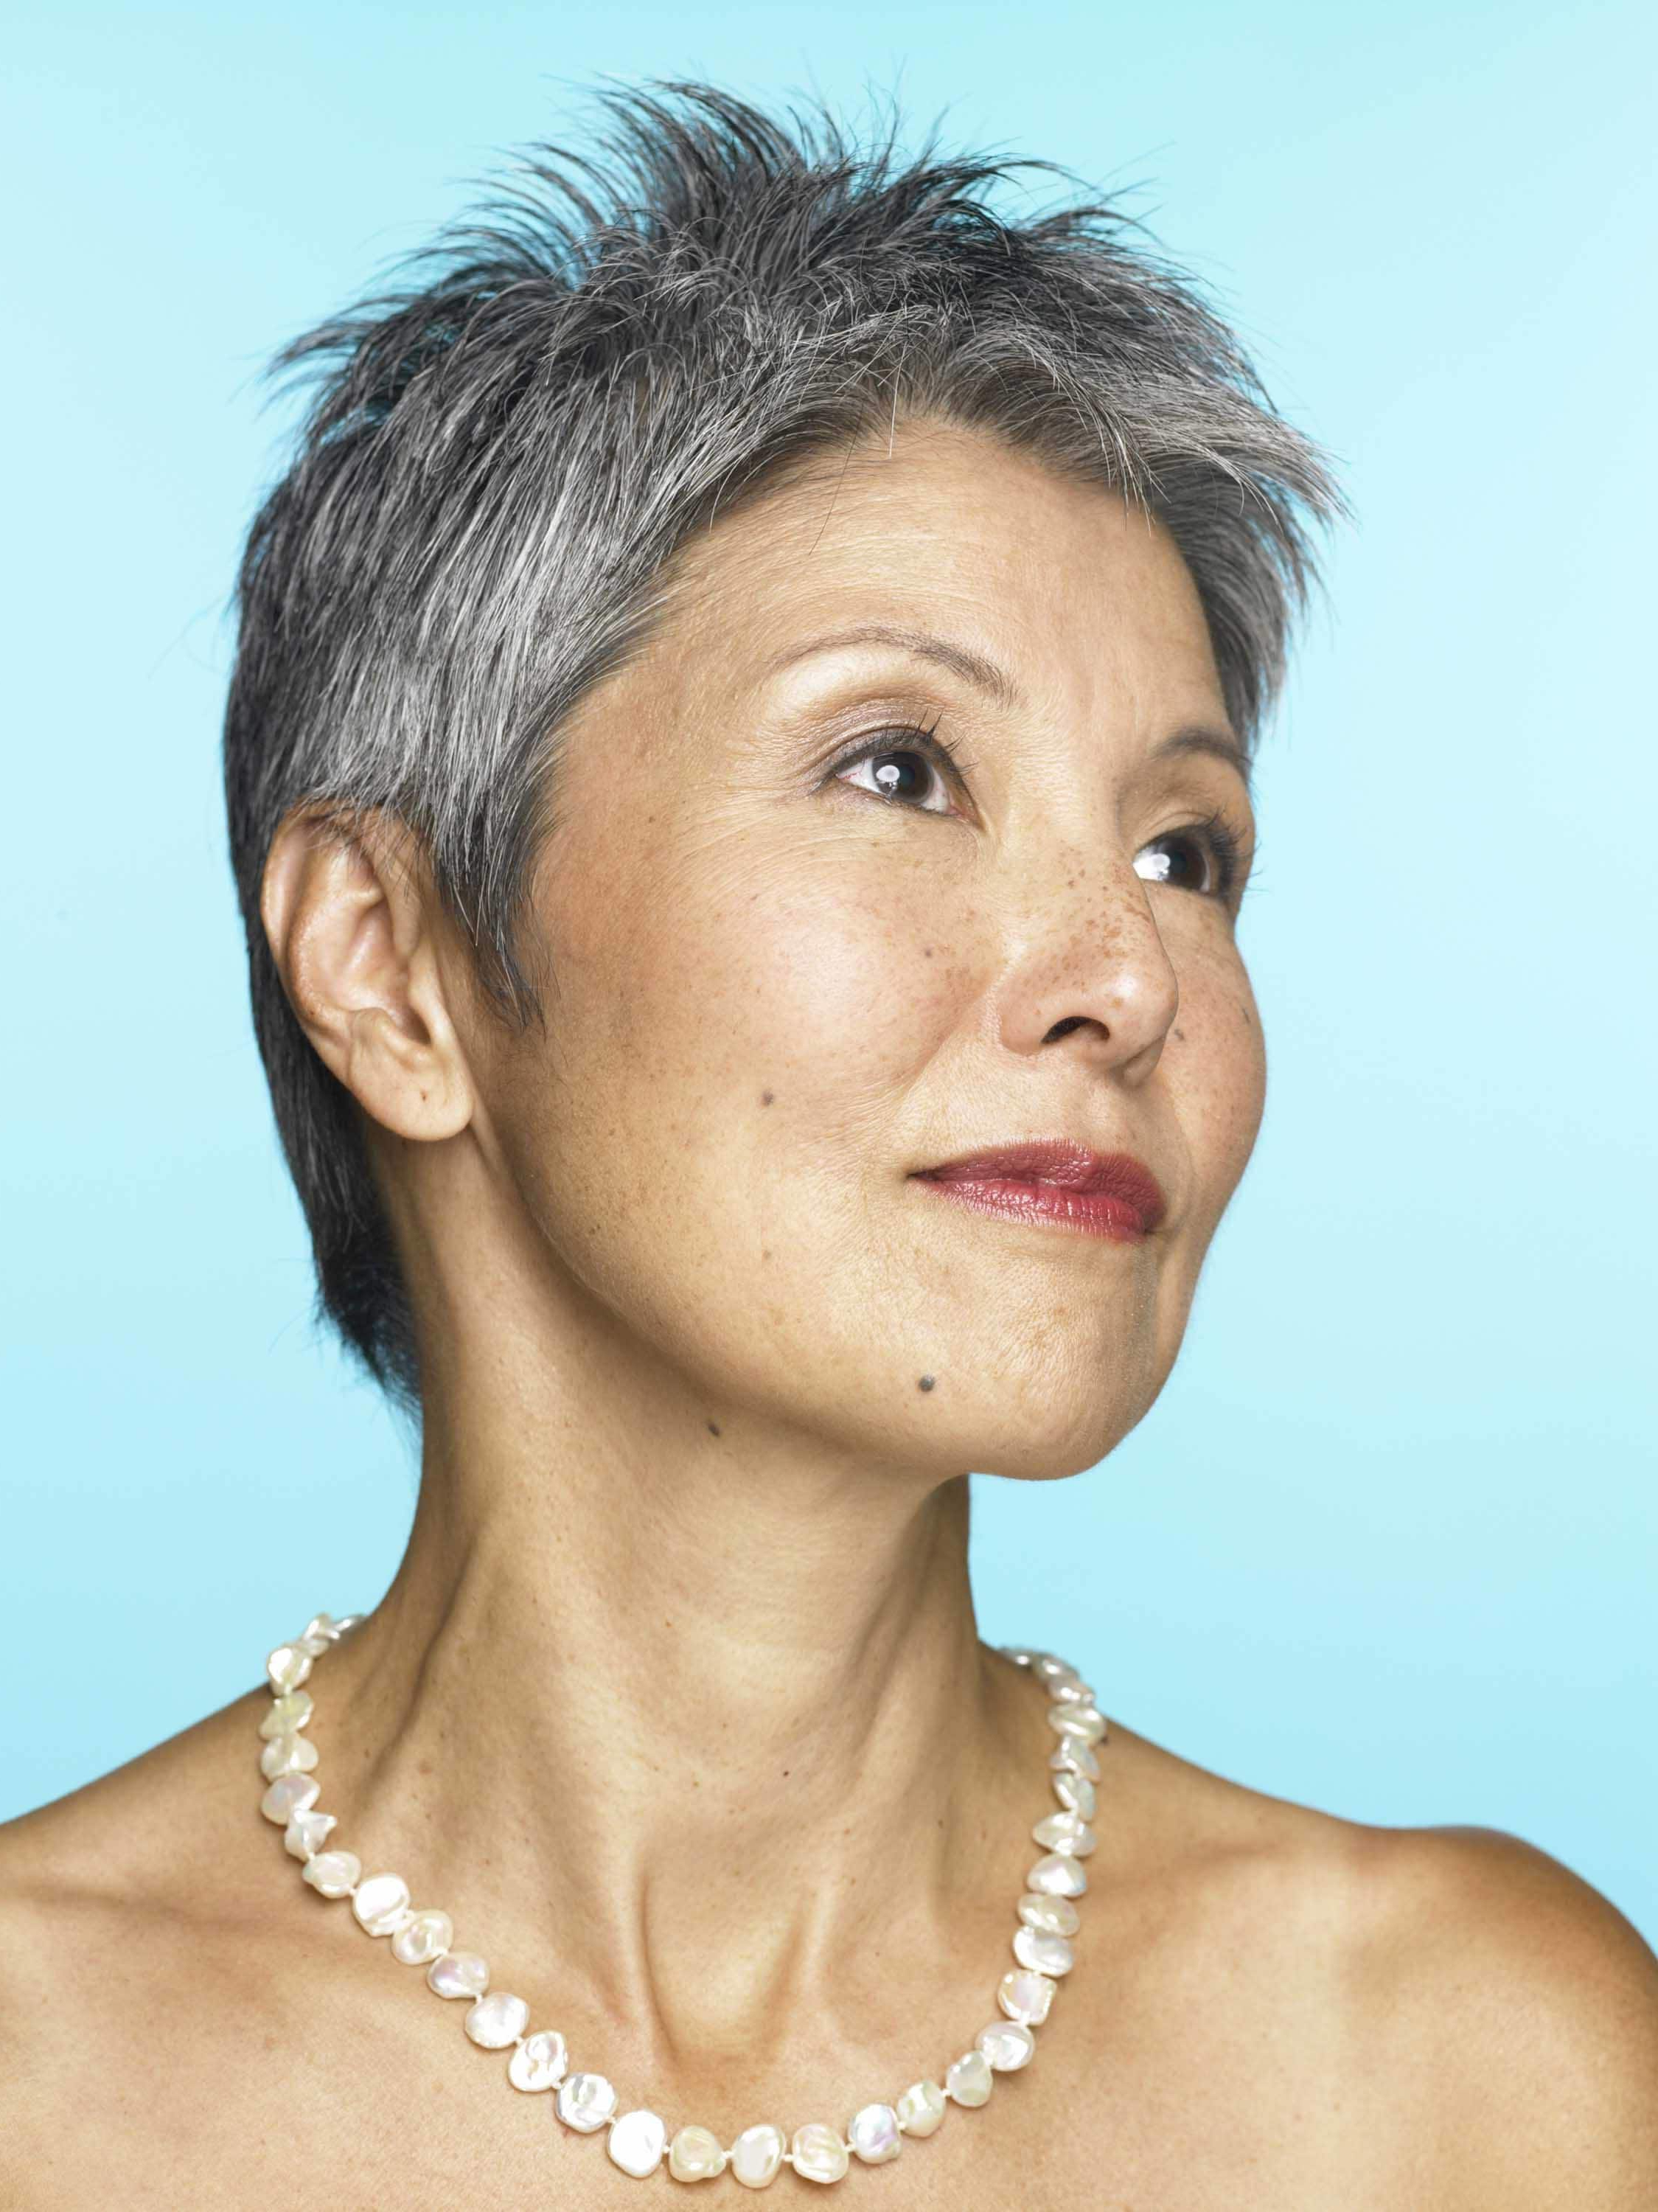 10 Chic Short Gray Hair Looks For Older Women For Short Hairstyles For Salt And Pepper Hair (View 14 of 25)